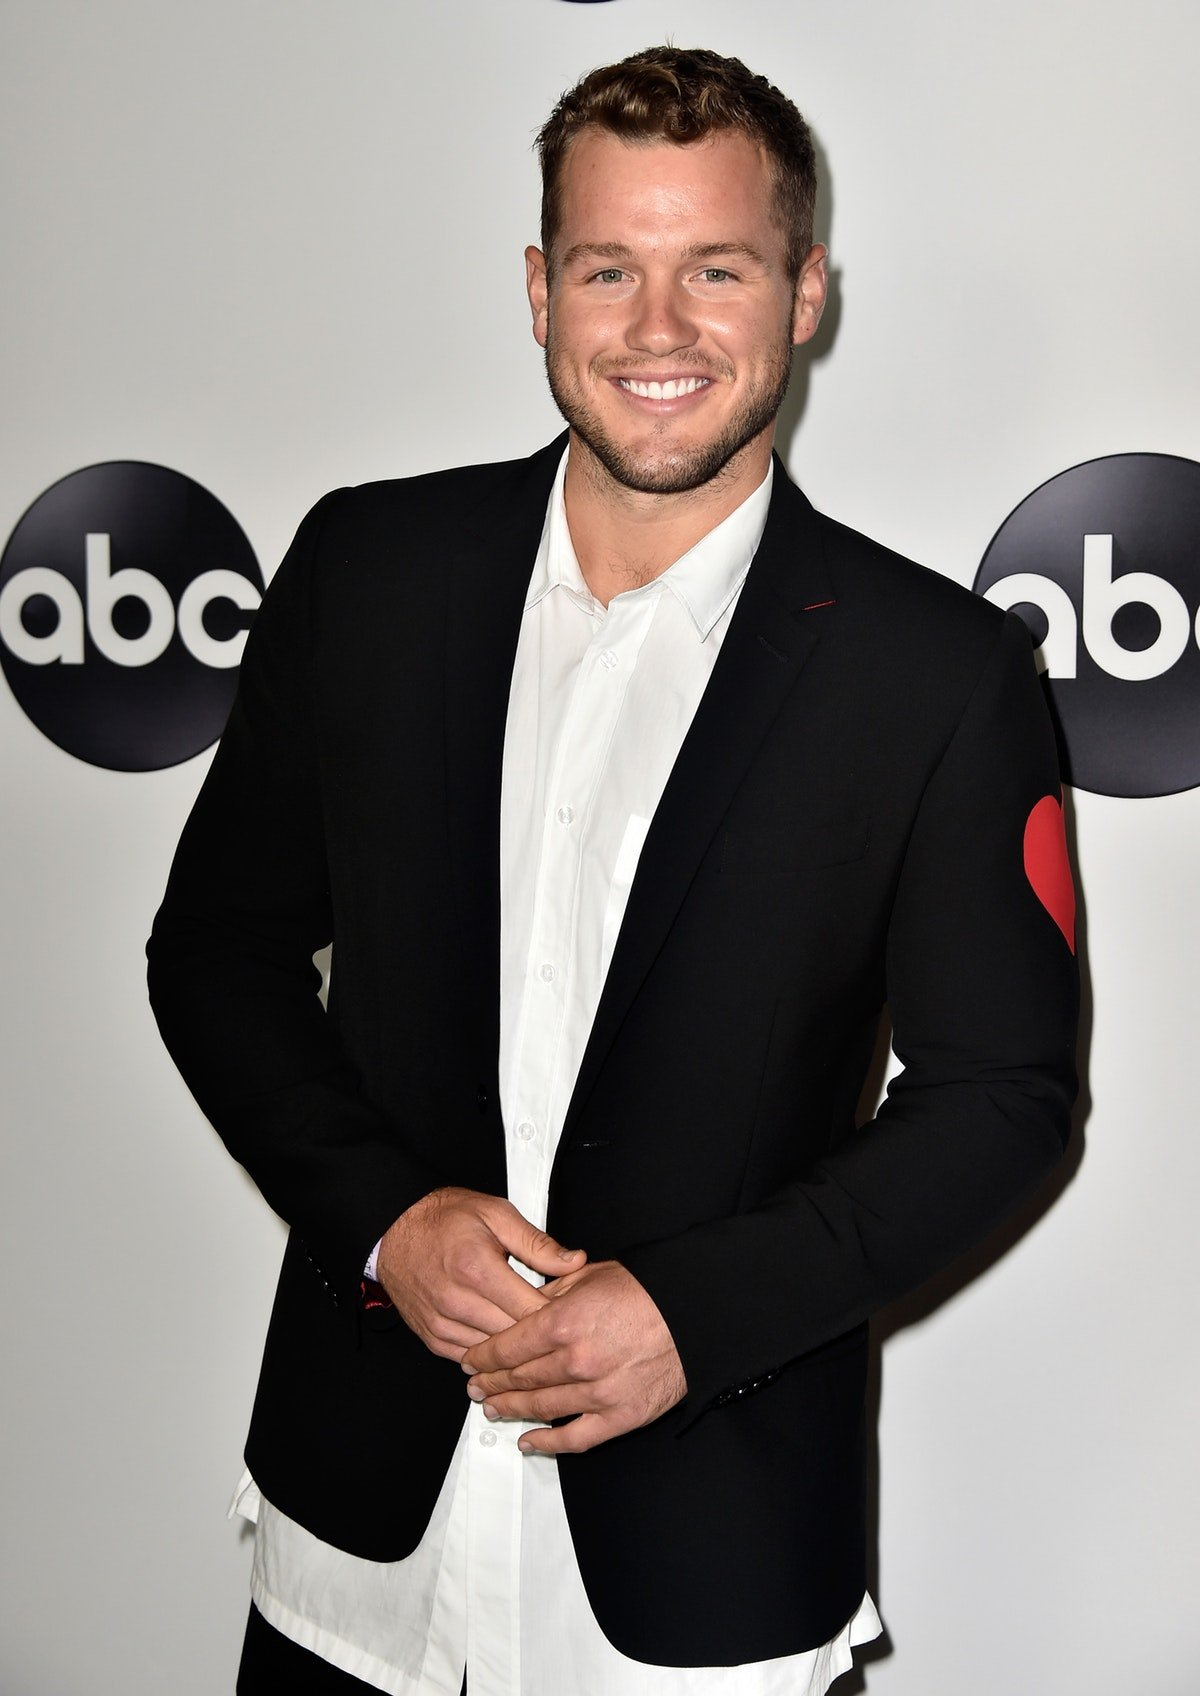 Colton Is Trying To Keep His 'Bachelor' Ending A Secret, But He's Dropped Plenty Of Clues